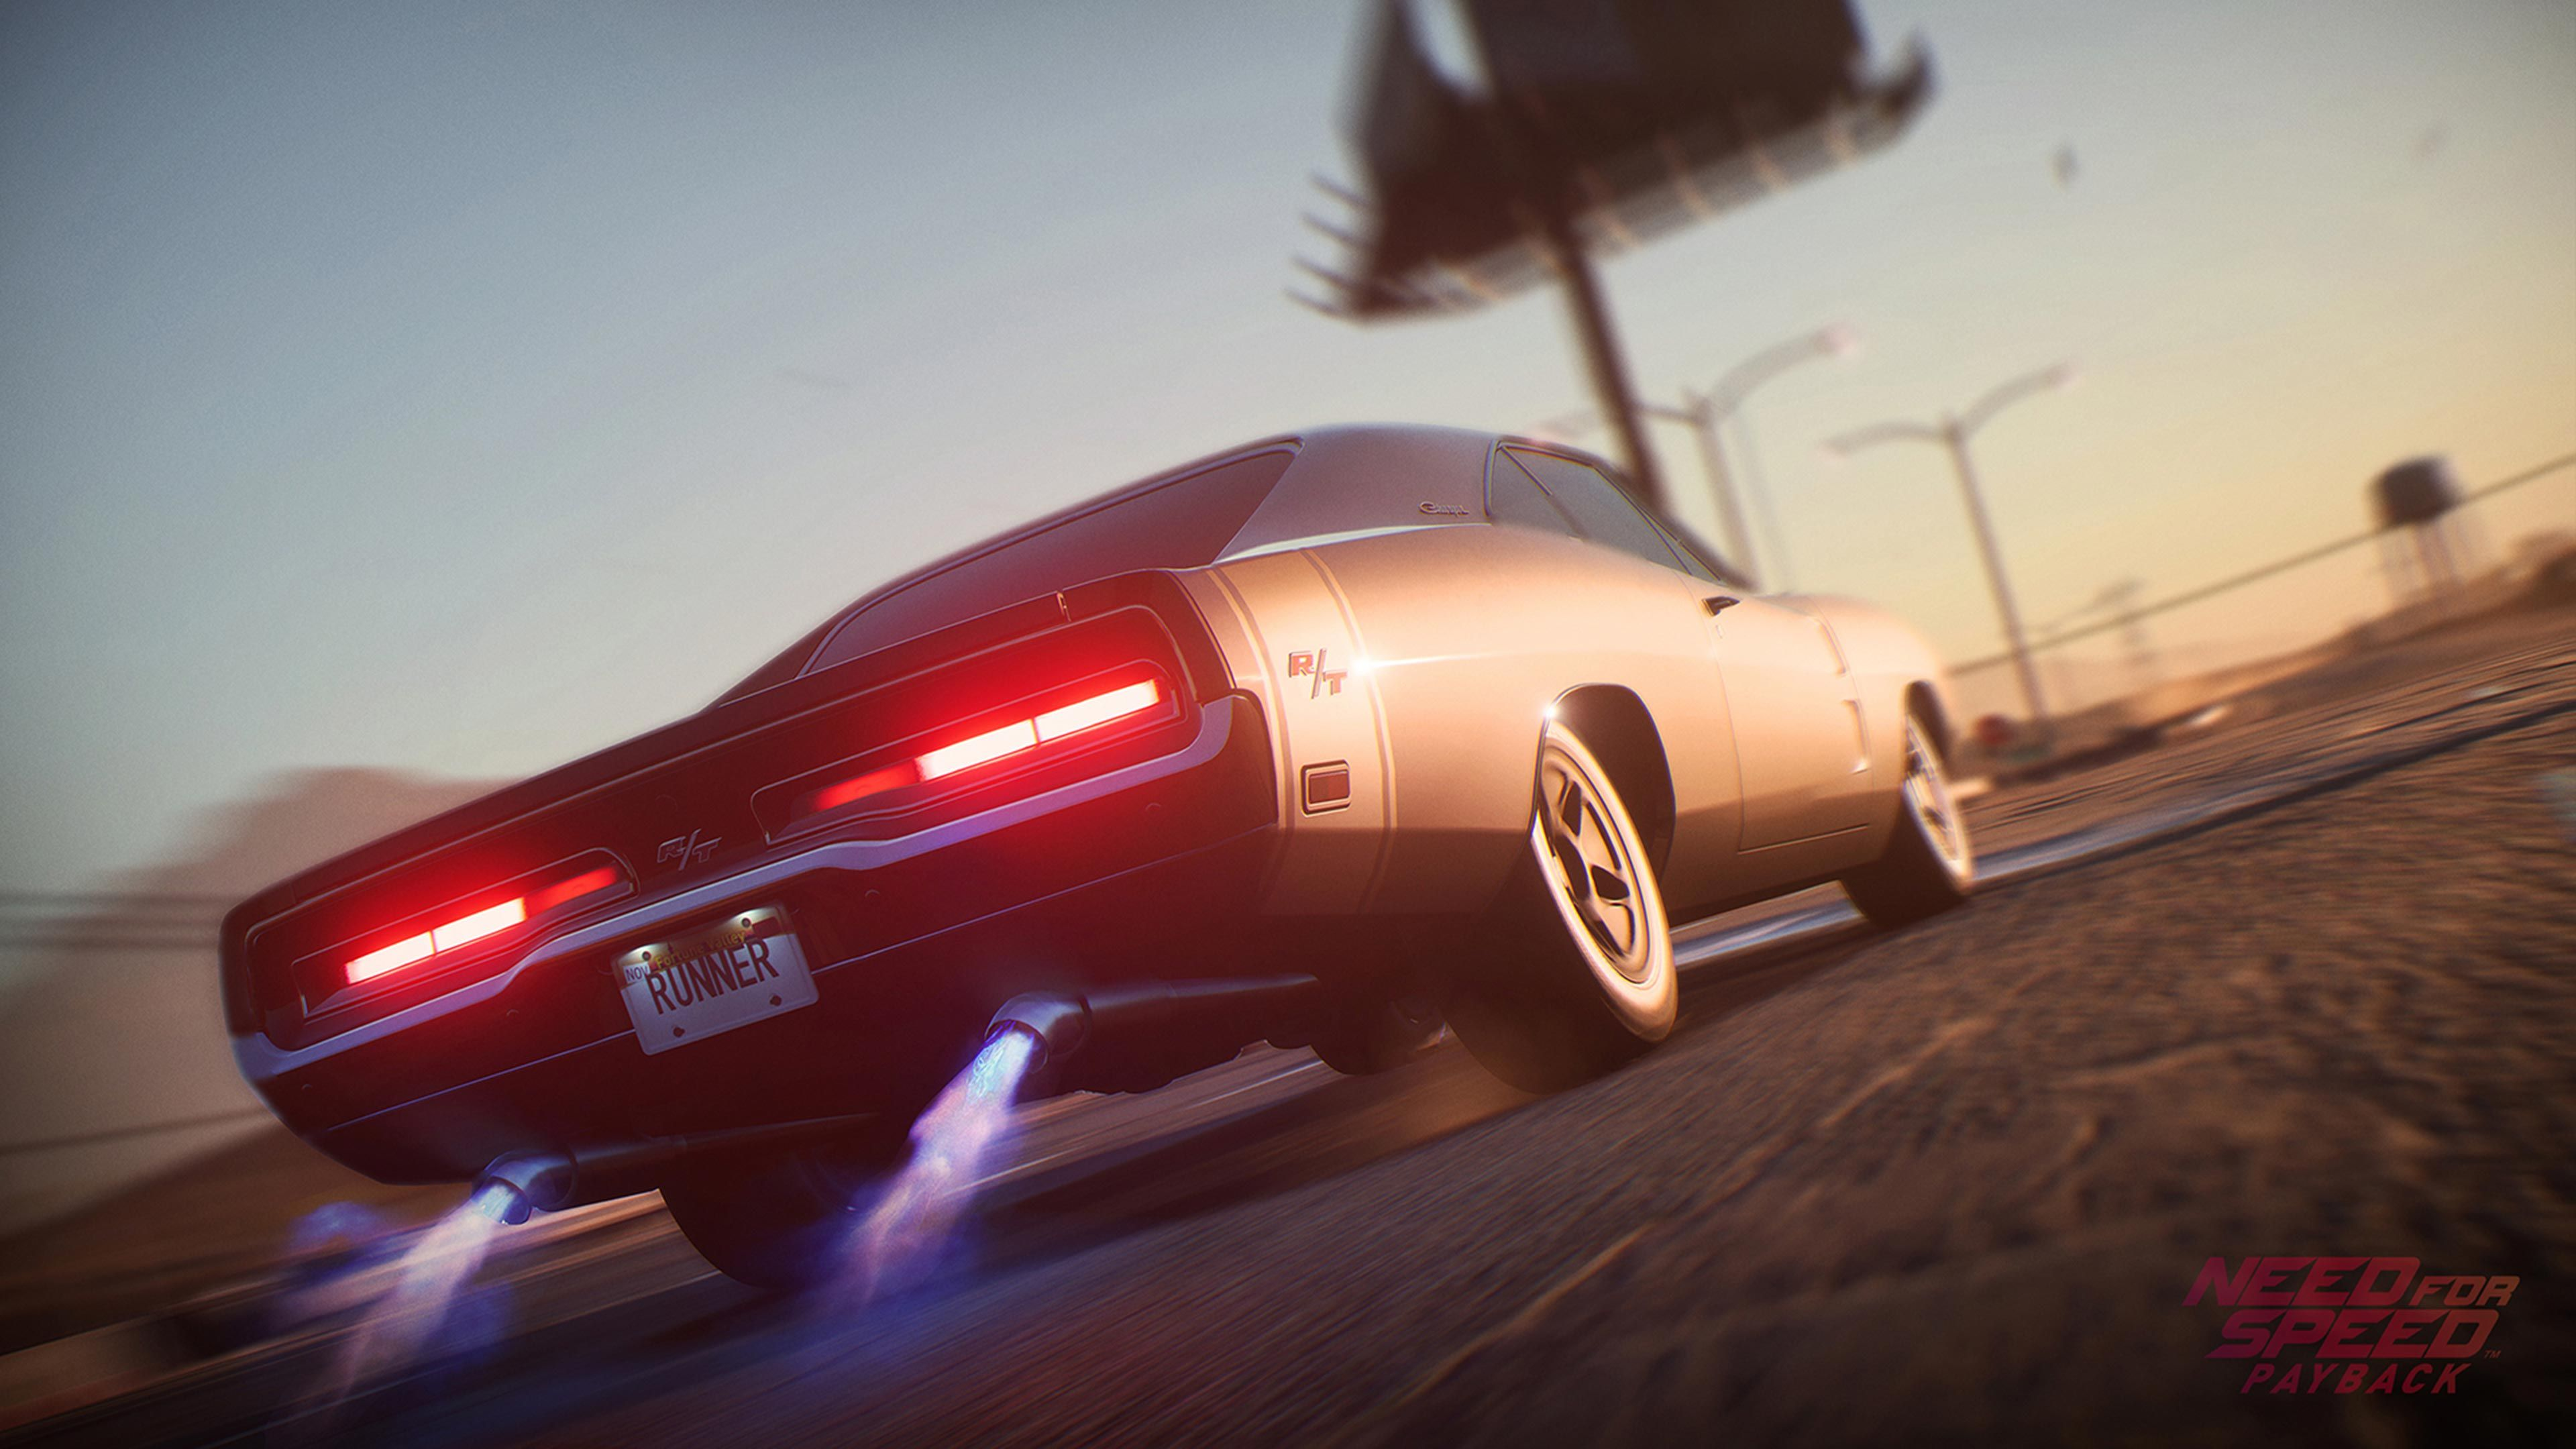 Dodge Charger Need Speed Payback Is An HD Desktop Wallpaper Posted In Our Free Image Collection Of Gaming Wallpapers